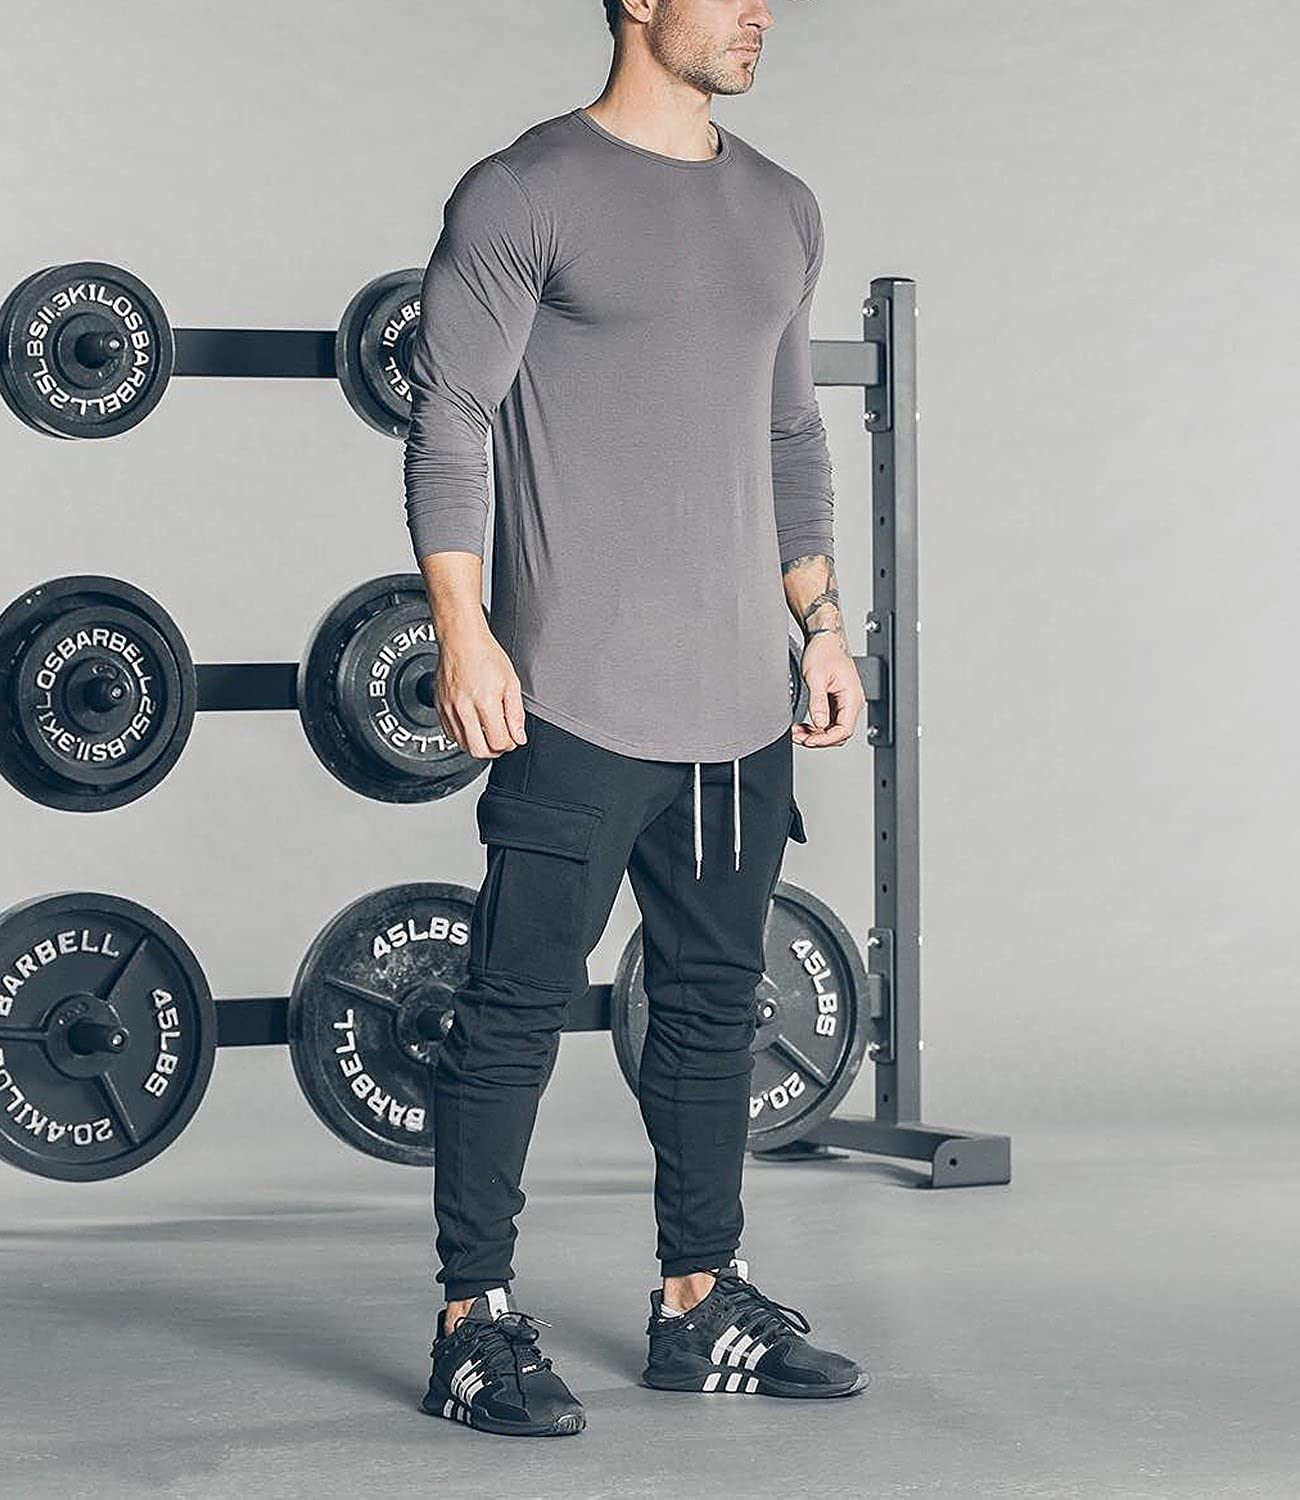 Ouber Mens Cargo Joggers Gym Pants with Zippered Pockets